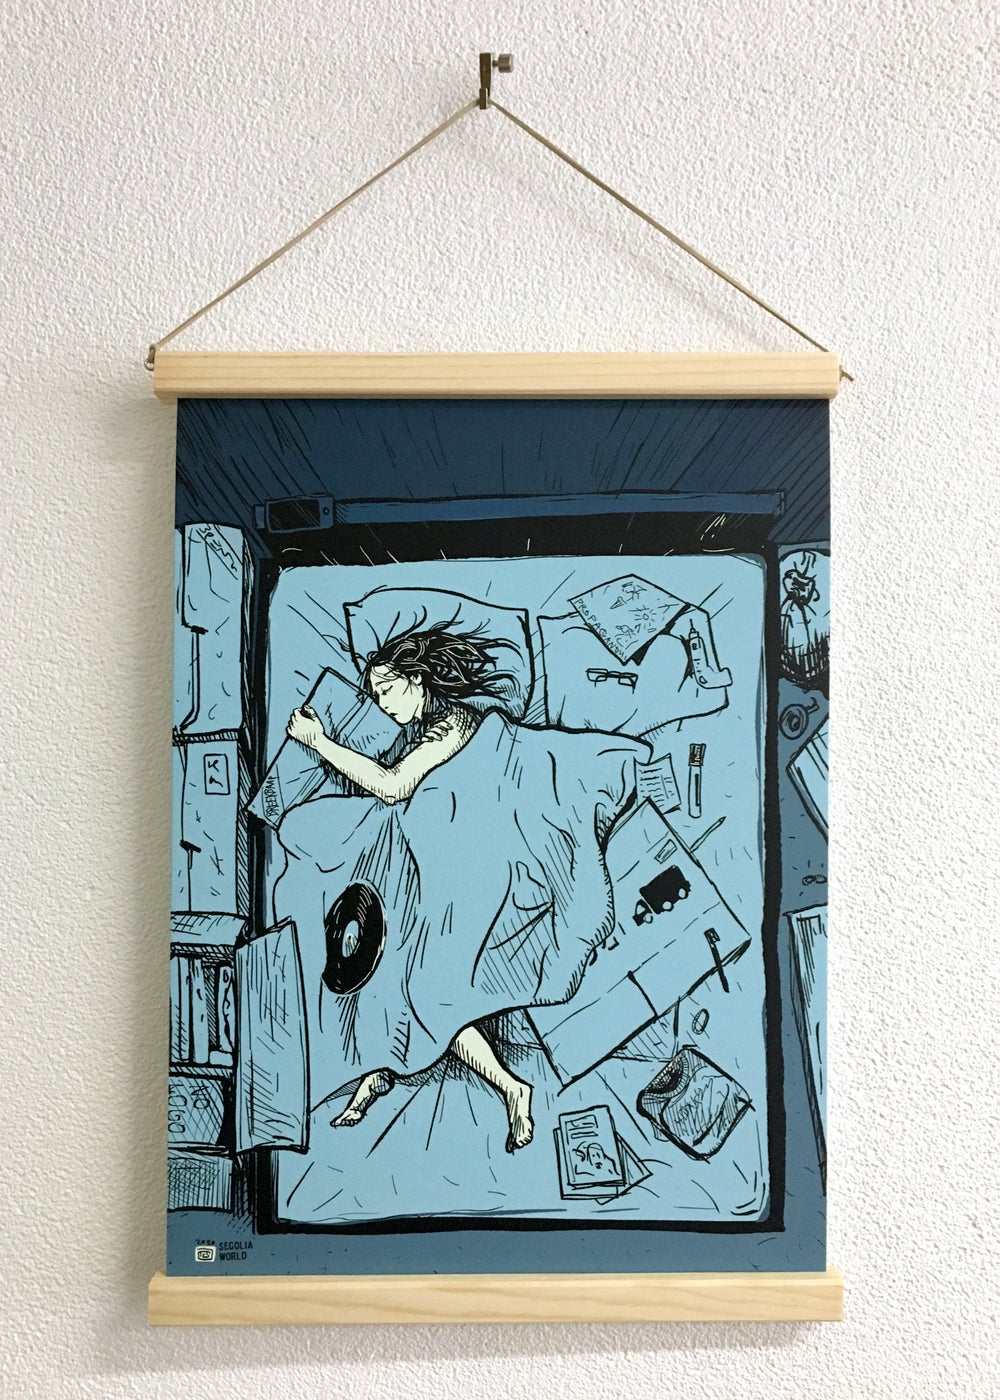 Limited Poster - Unusual Bedpartners